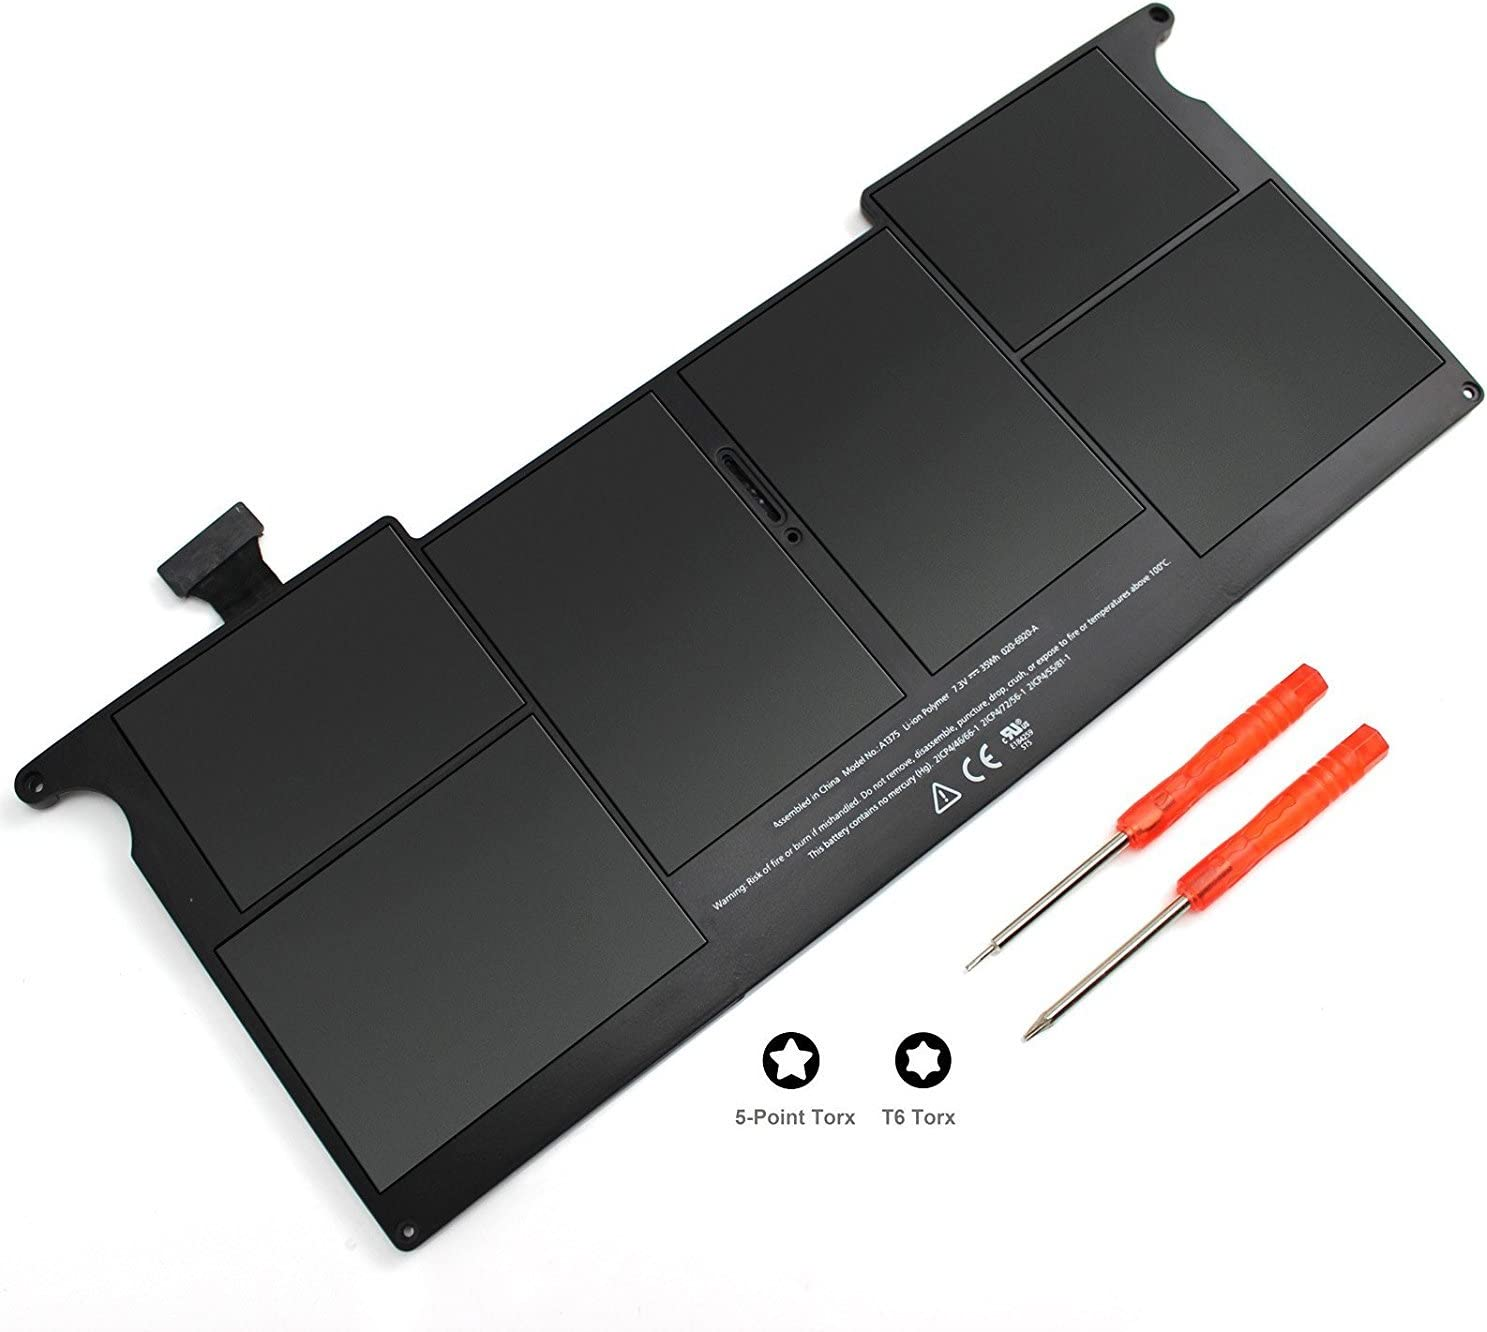 HUSAN New A1375 Laptop Battery Compatible for MacBook Air 11 inch A1370 (Only 2010 Version),Fits MC507 MC505LL/A MC506LL/A MC507LL/A